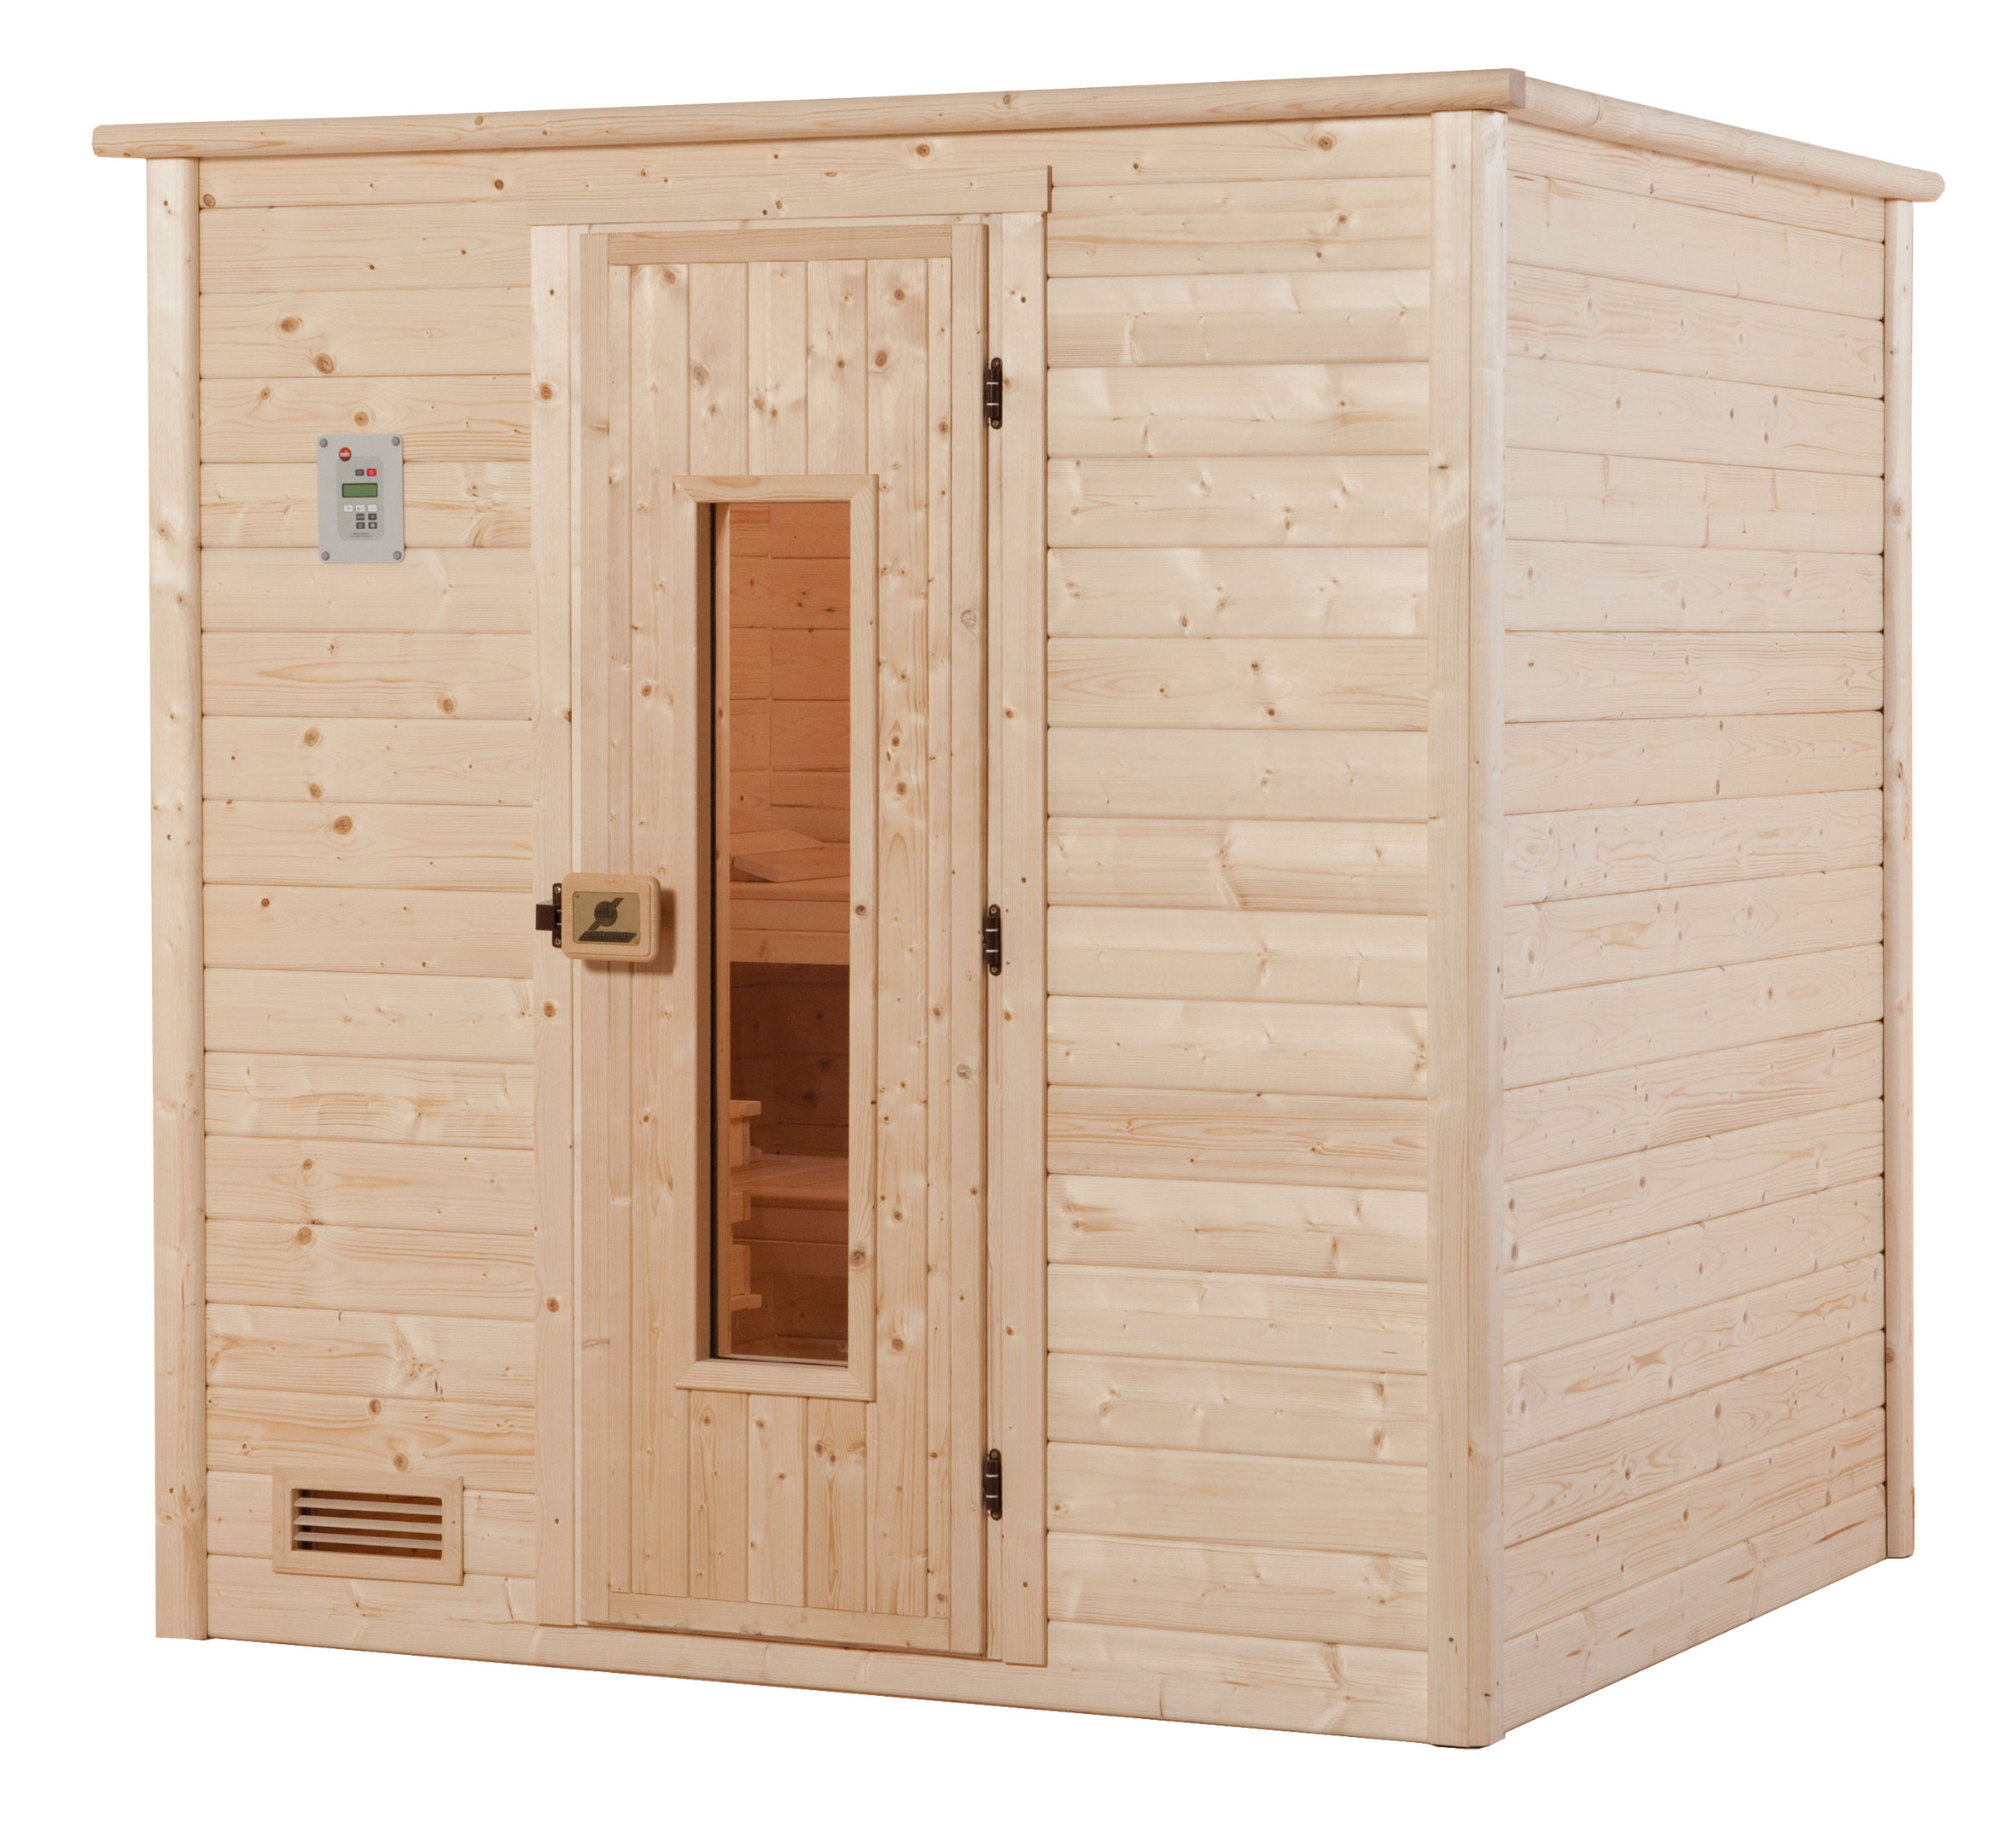 weka sauna 531 ht gr 4 ohne ofen mit holzt r bei. Black Bedroom Furniture Sets. Home Design Ideas